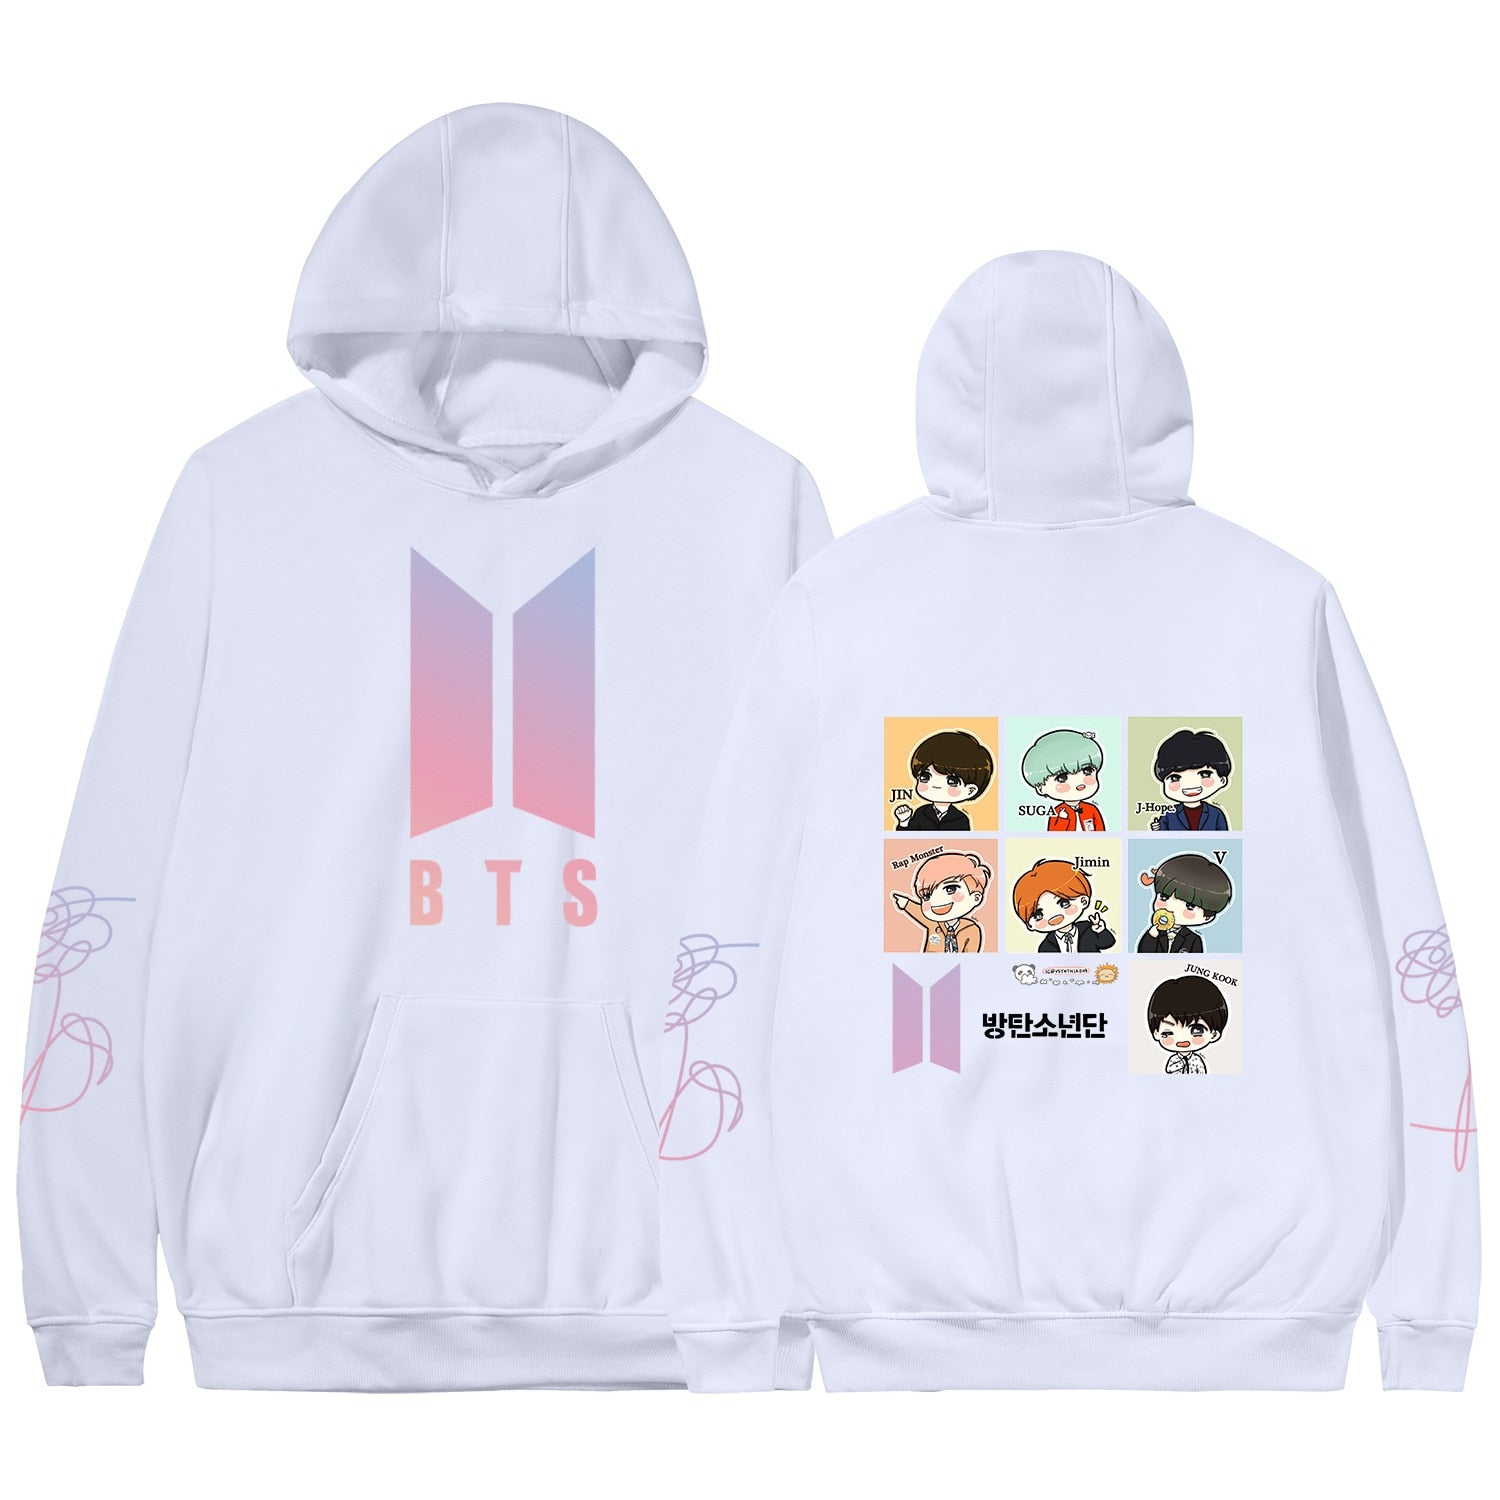 BTS Love Yourself World Tour Hoodie